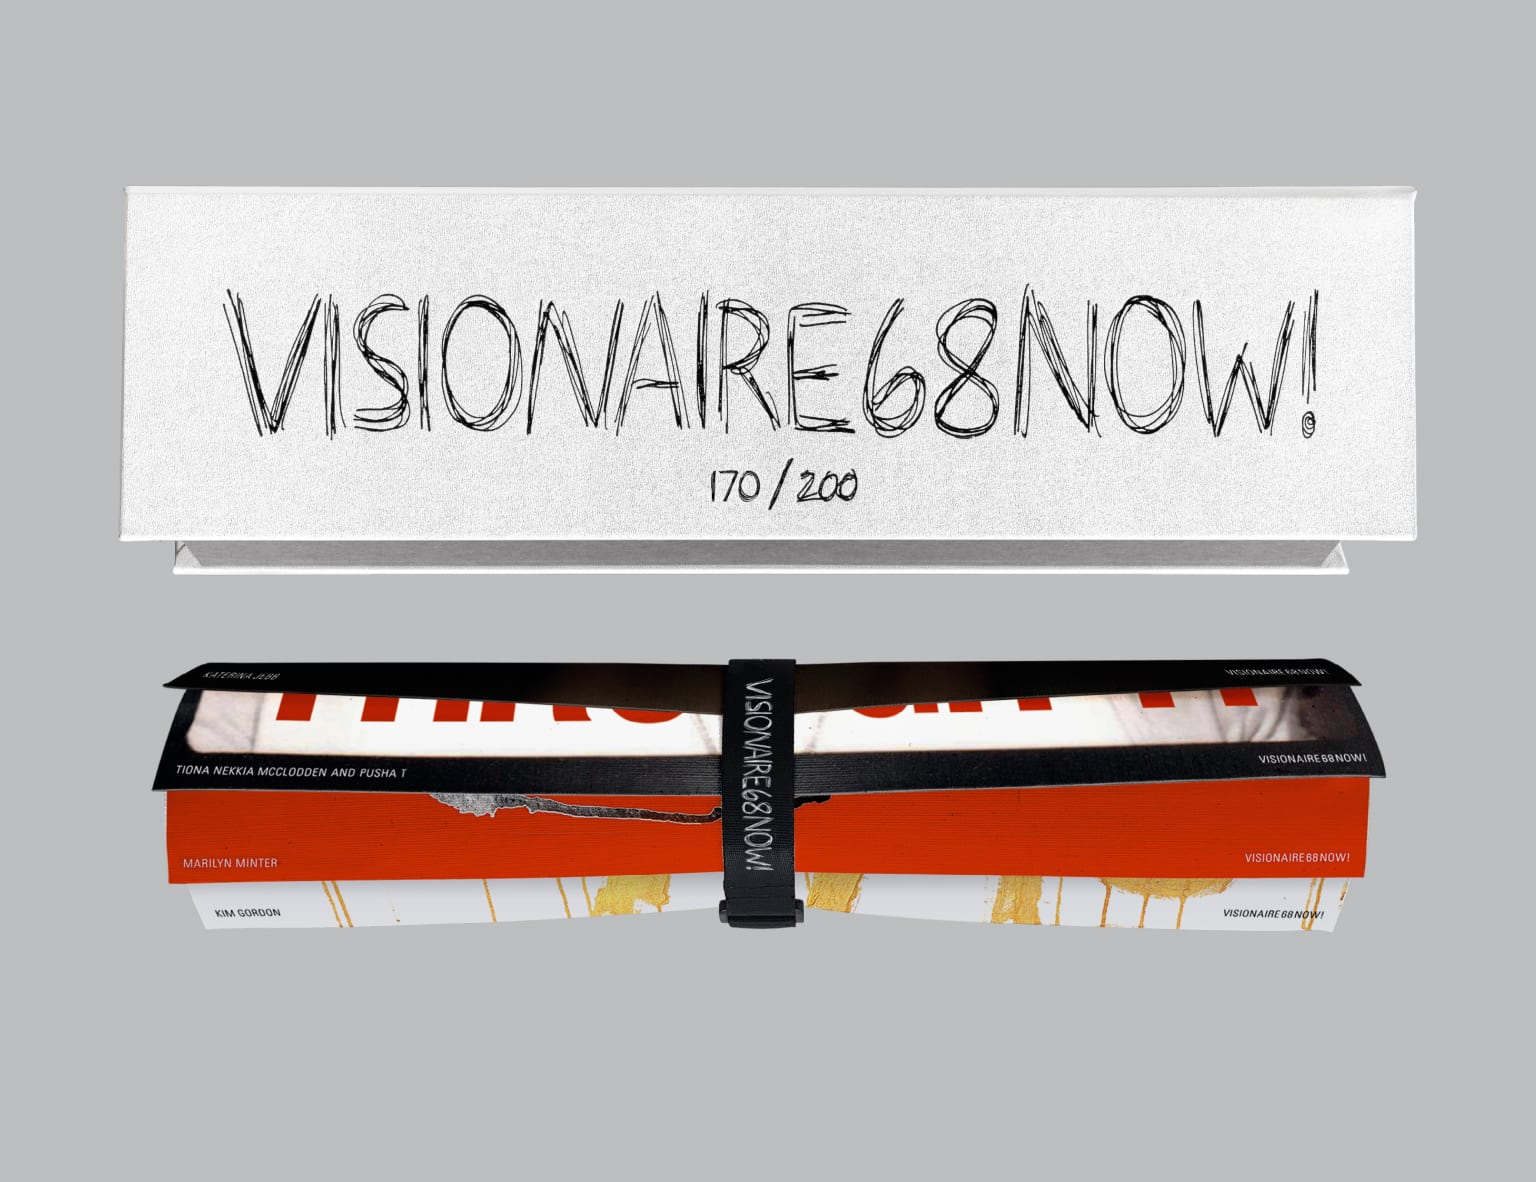 Visionaire 68 NOW!